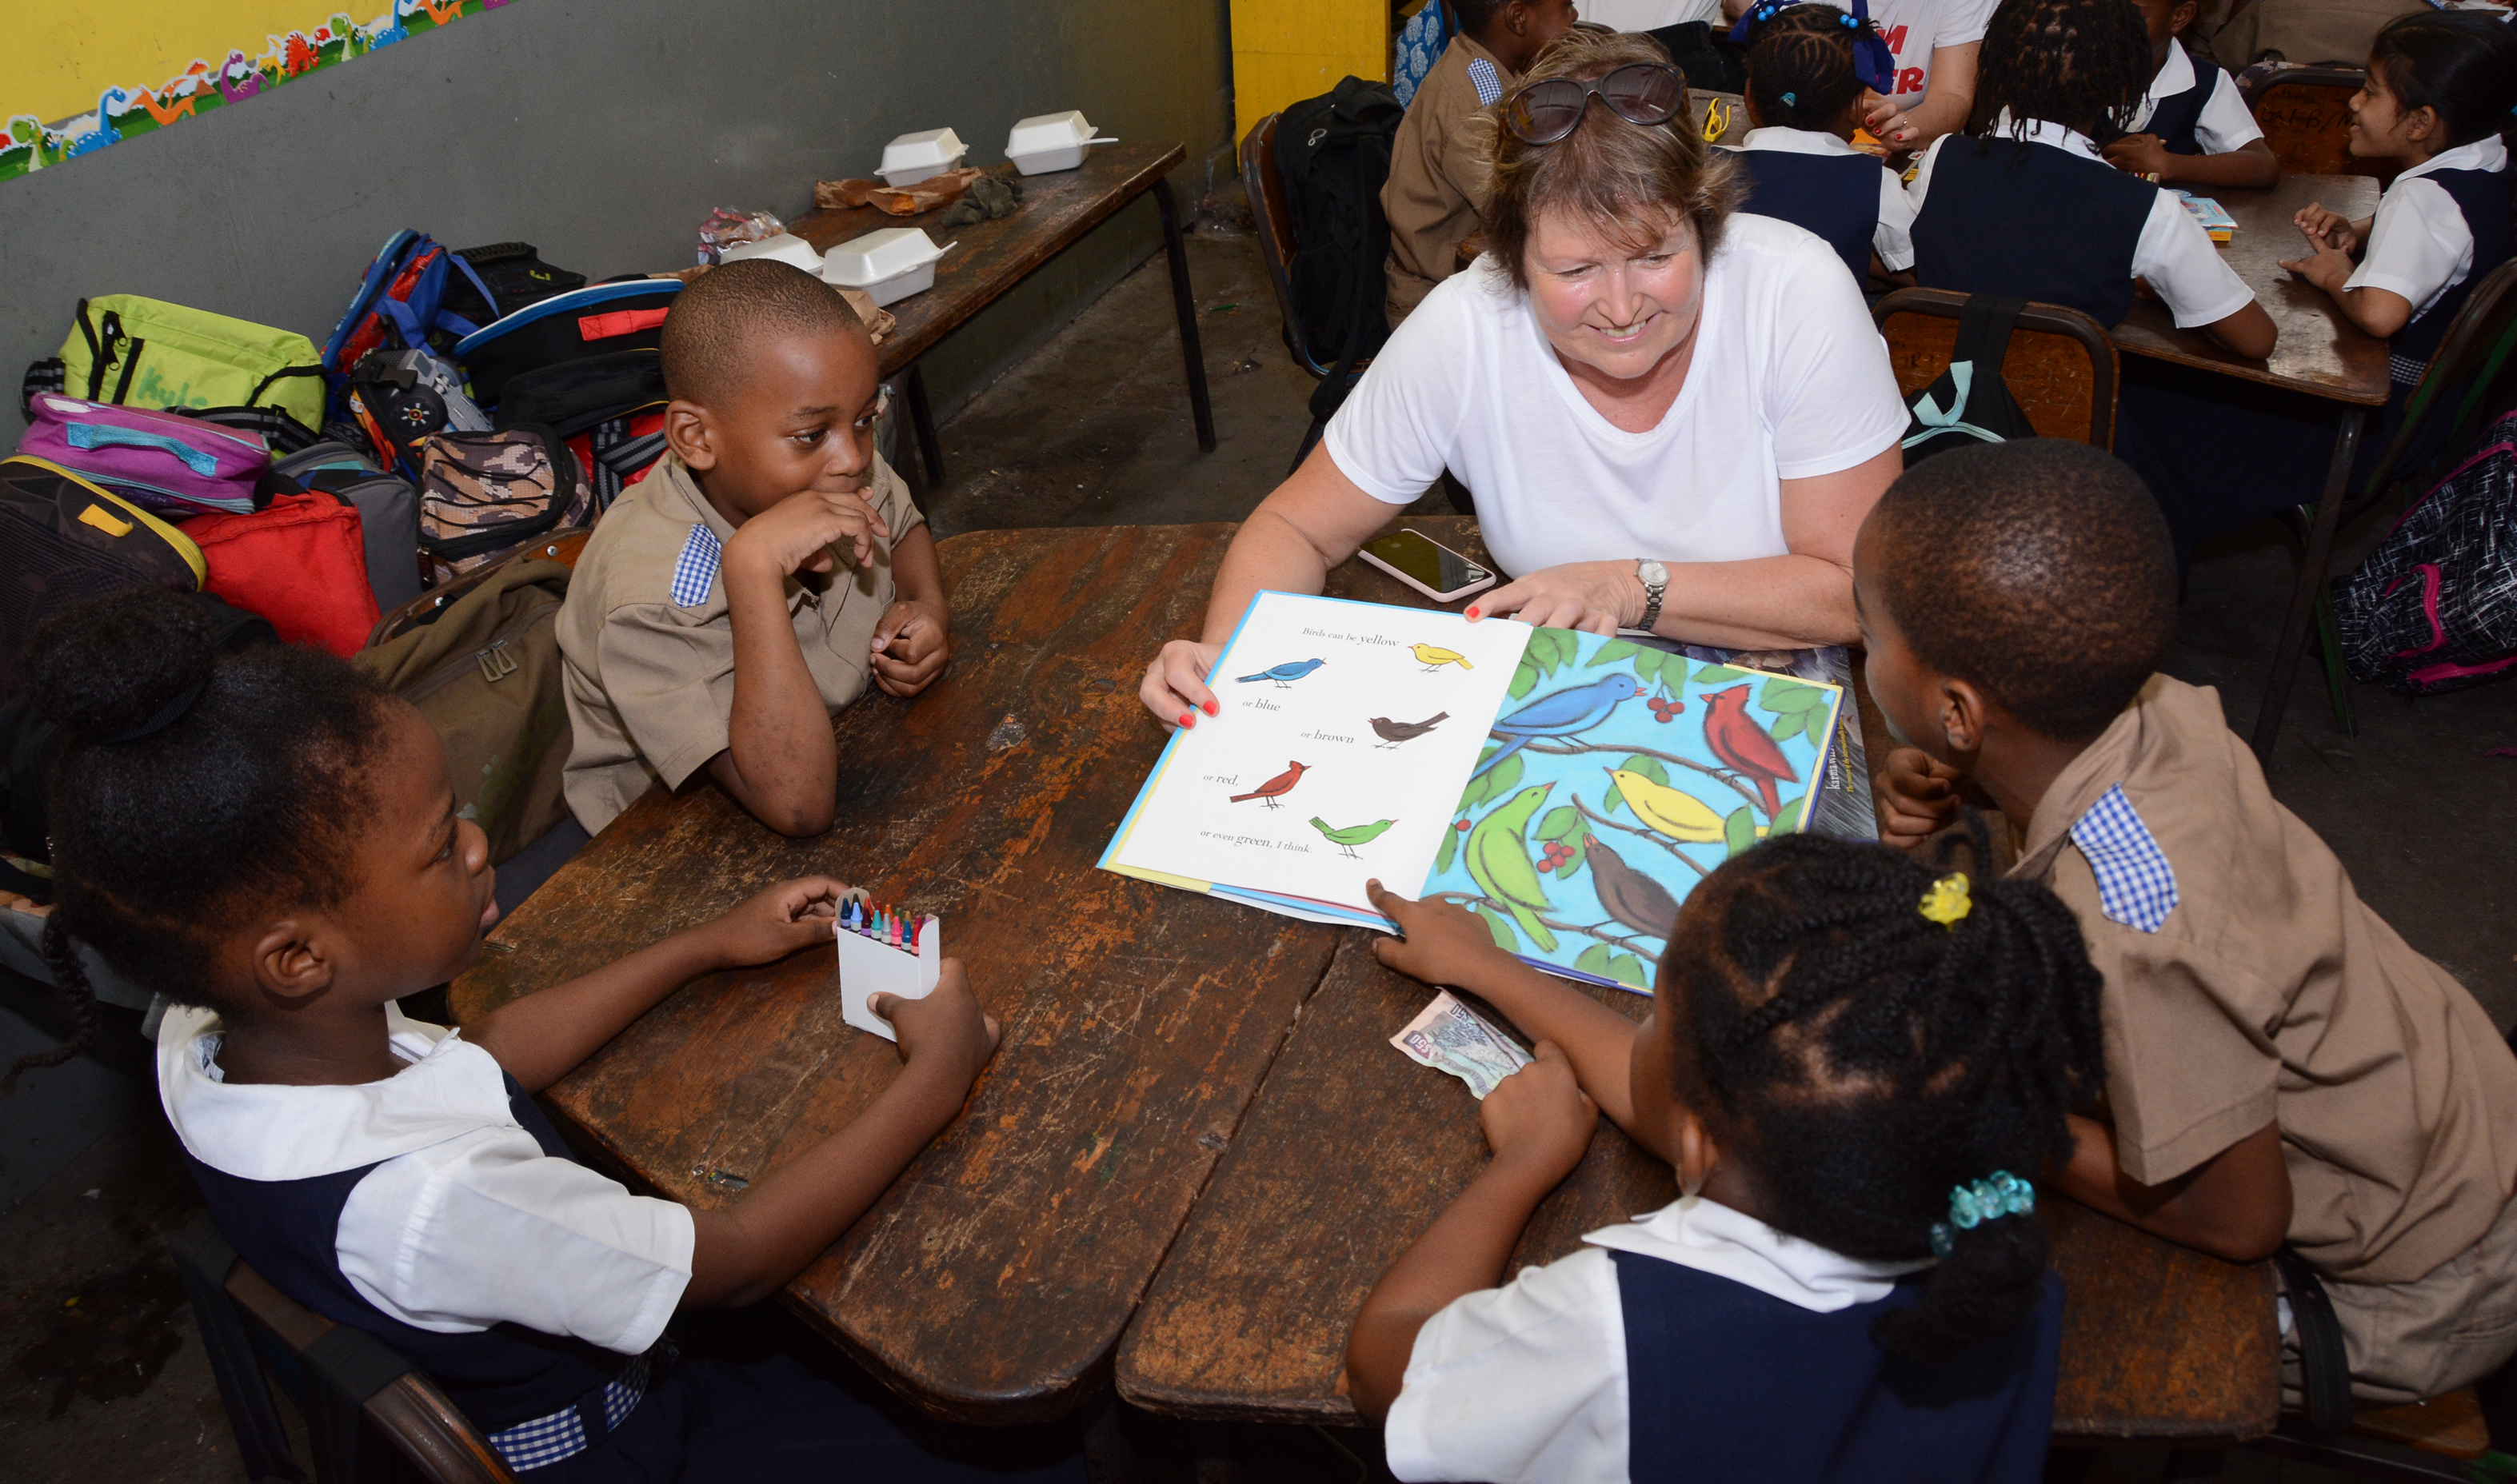 Hannah helps pupils read on a reading road trip excursion (Sandals Resorts/PA)